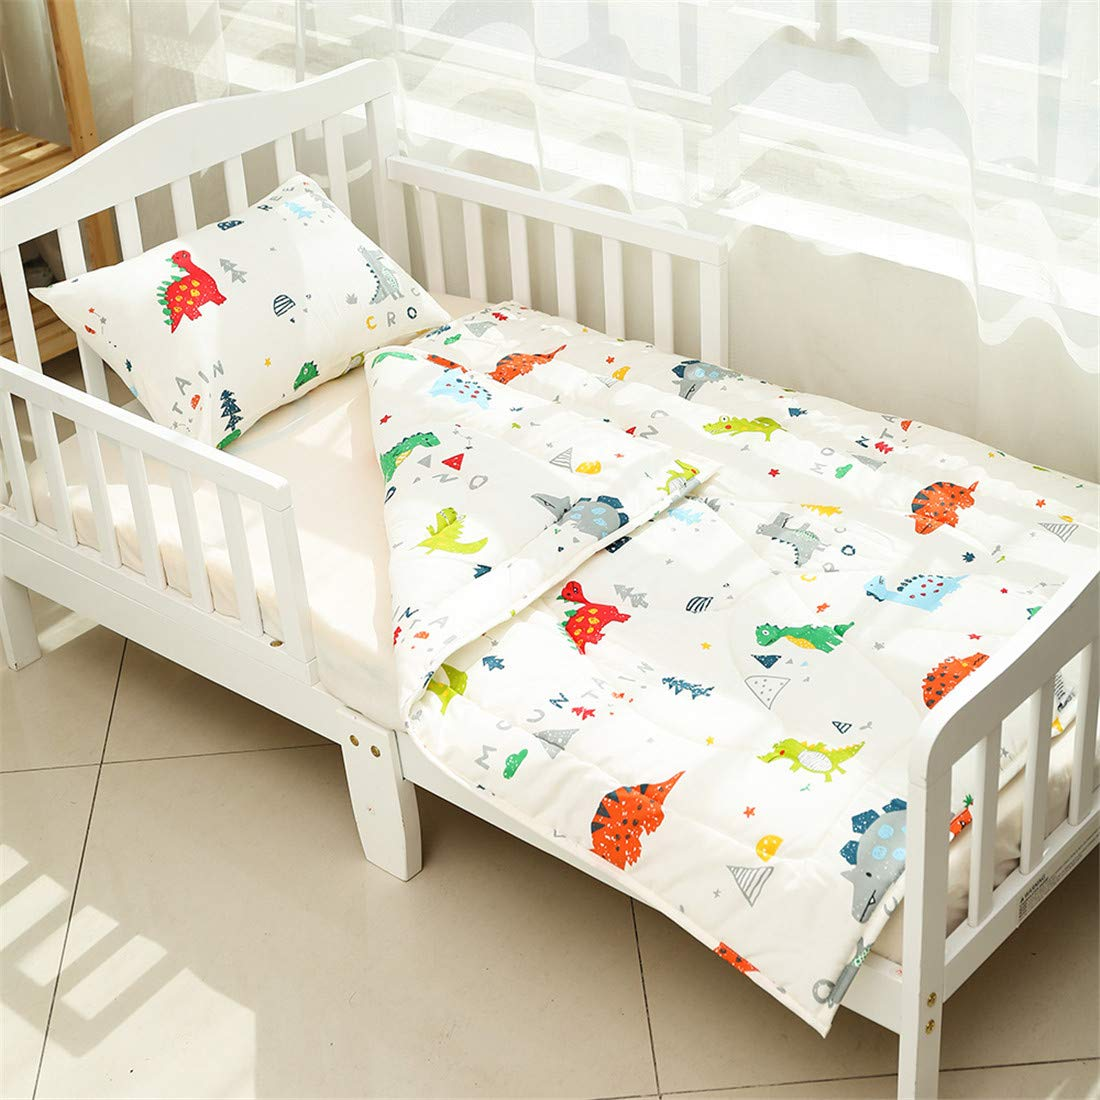 Soft Cot Comforter for Boys and Girls 1 Pack Satin Baby Cradle Quilt Soft Warm Throw Blanket Bed Cover 33 X 42 Dinosaur Pattern UOMNY Toddler Blanket